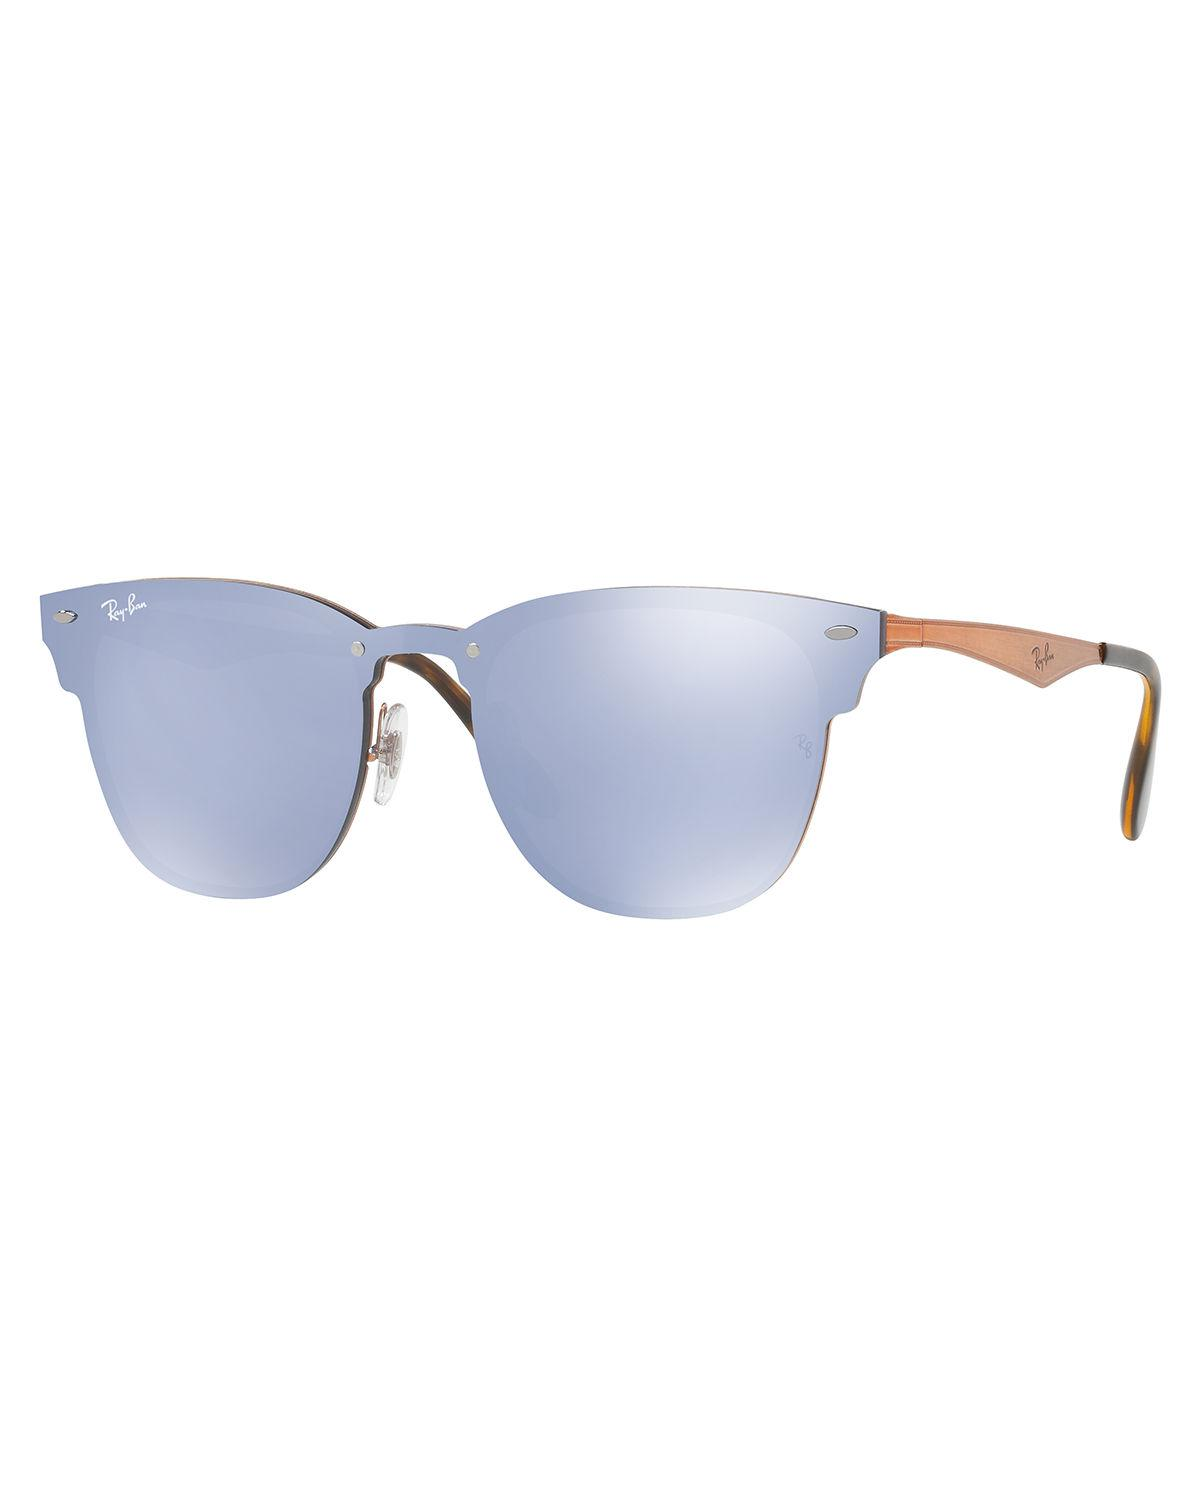 Lyst - Ray-Ban Blaze Clubmaster Lens-over-frame Sunglasses in Blue ...